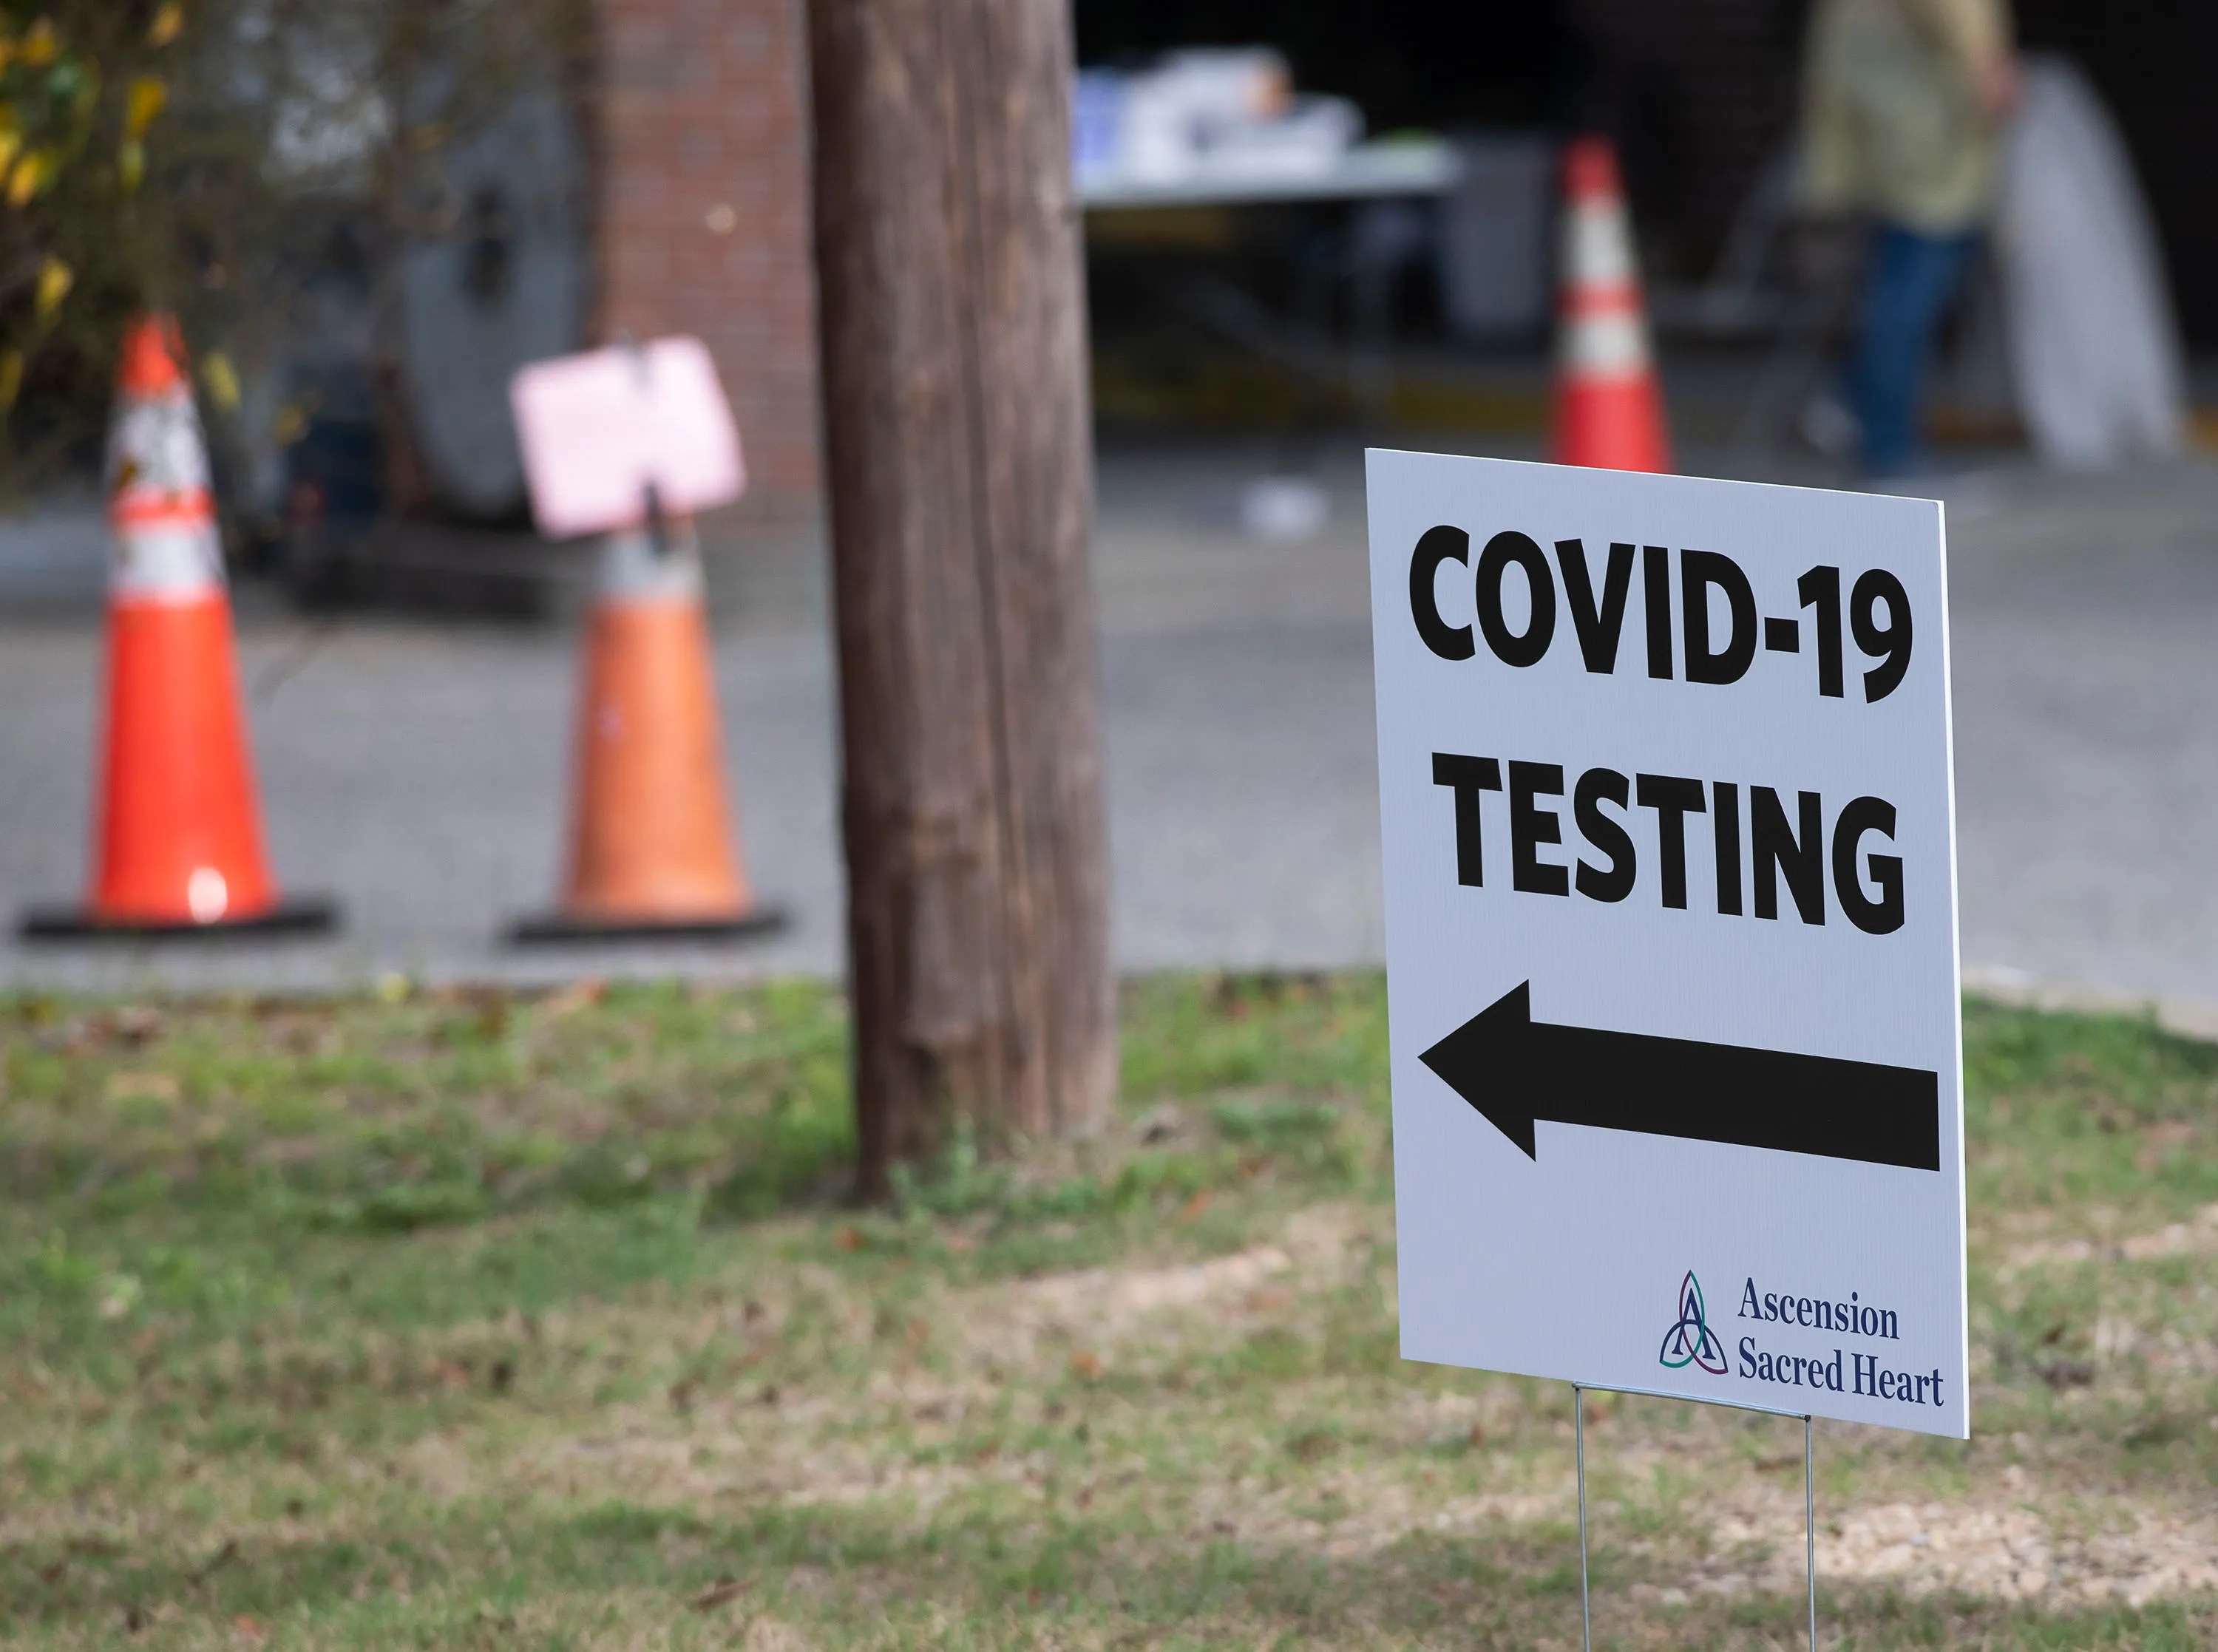 Pensacola coronavirus: PPD, testing, closures: What you need to know